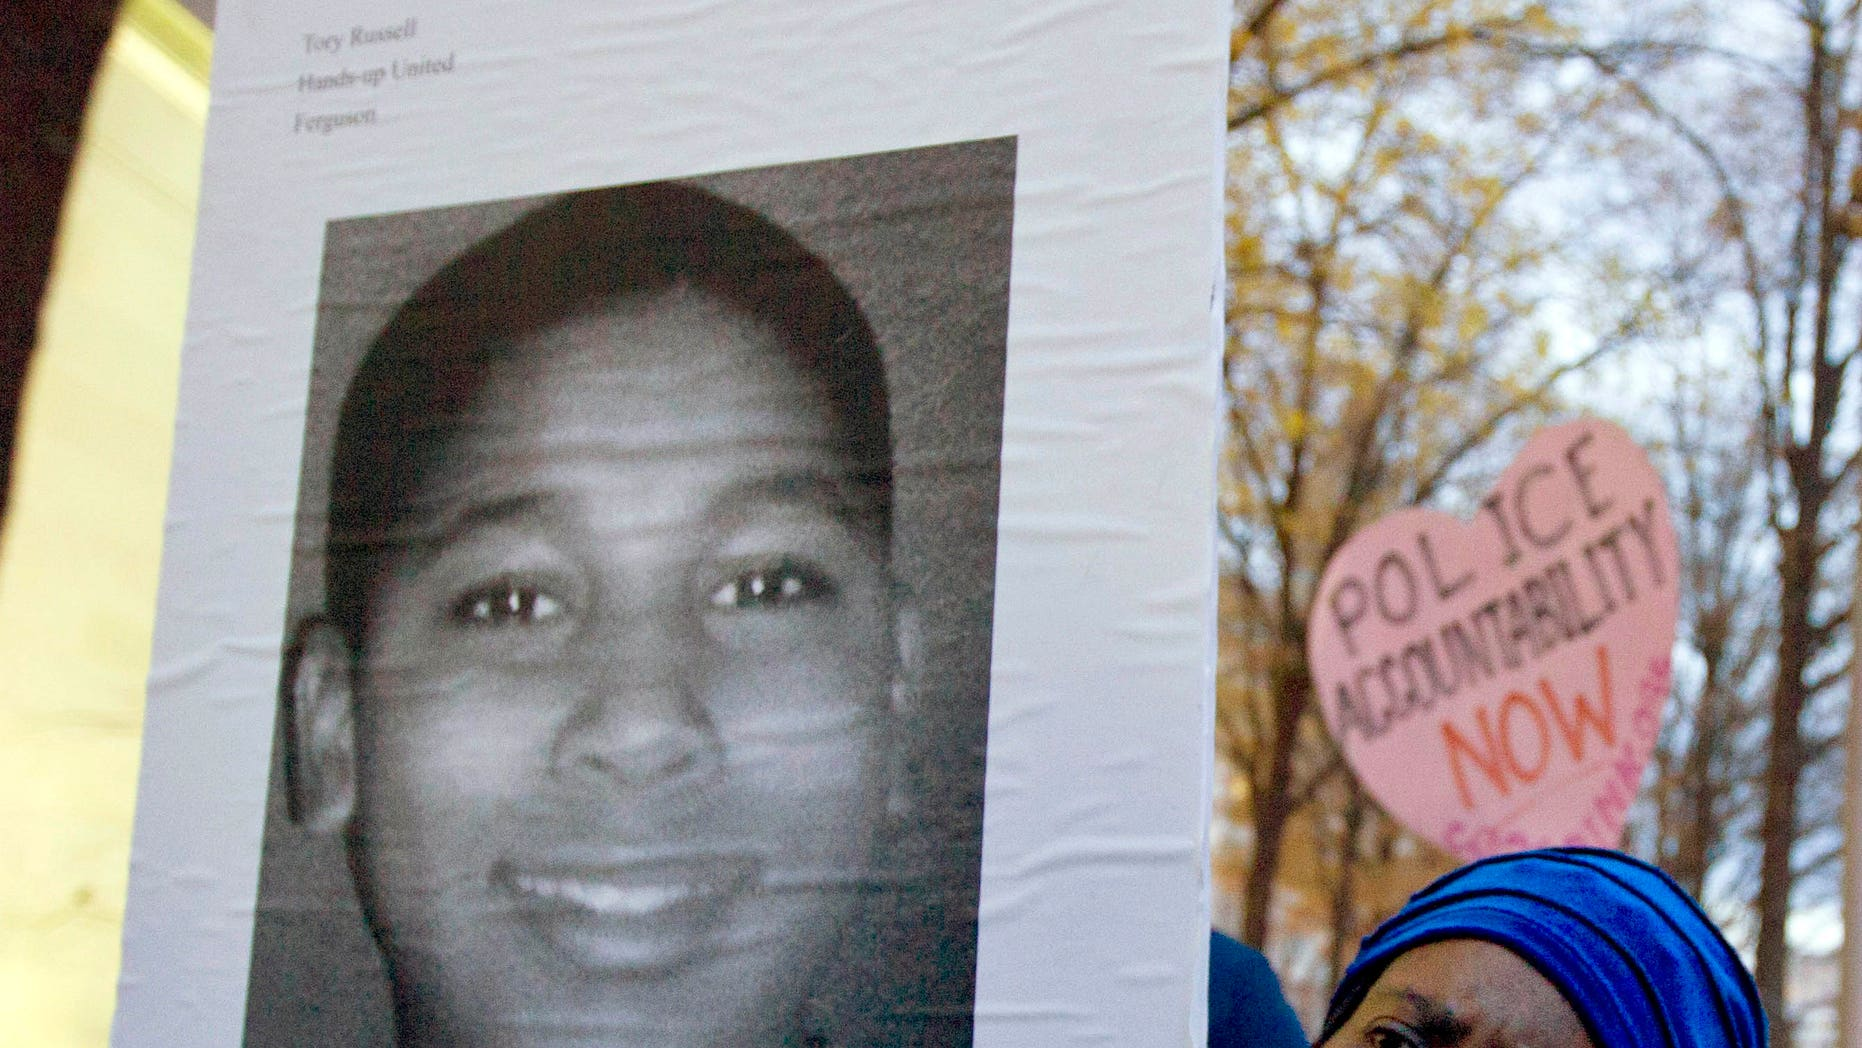 A woman holds up a picture of Tamir Rice, 12, who was fatally shot by a police officer in Cleveland, Ohio.